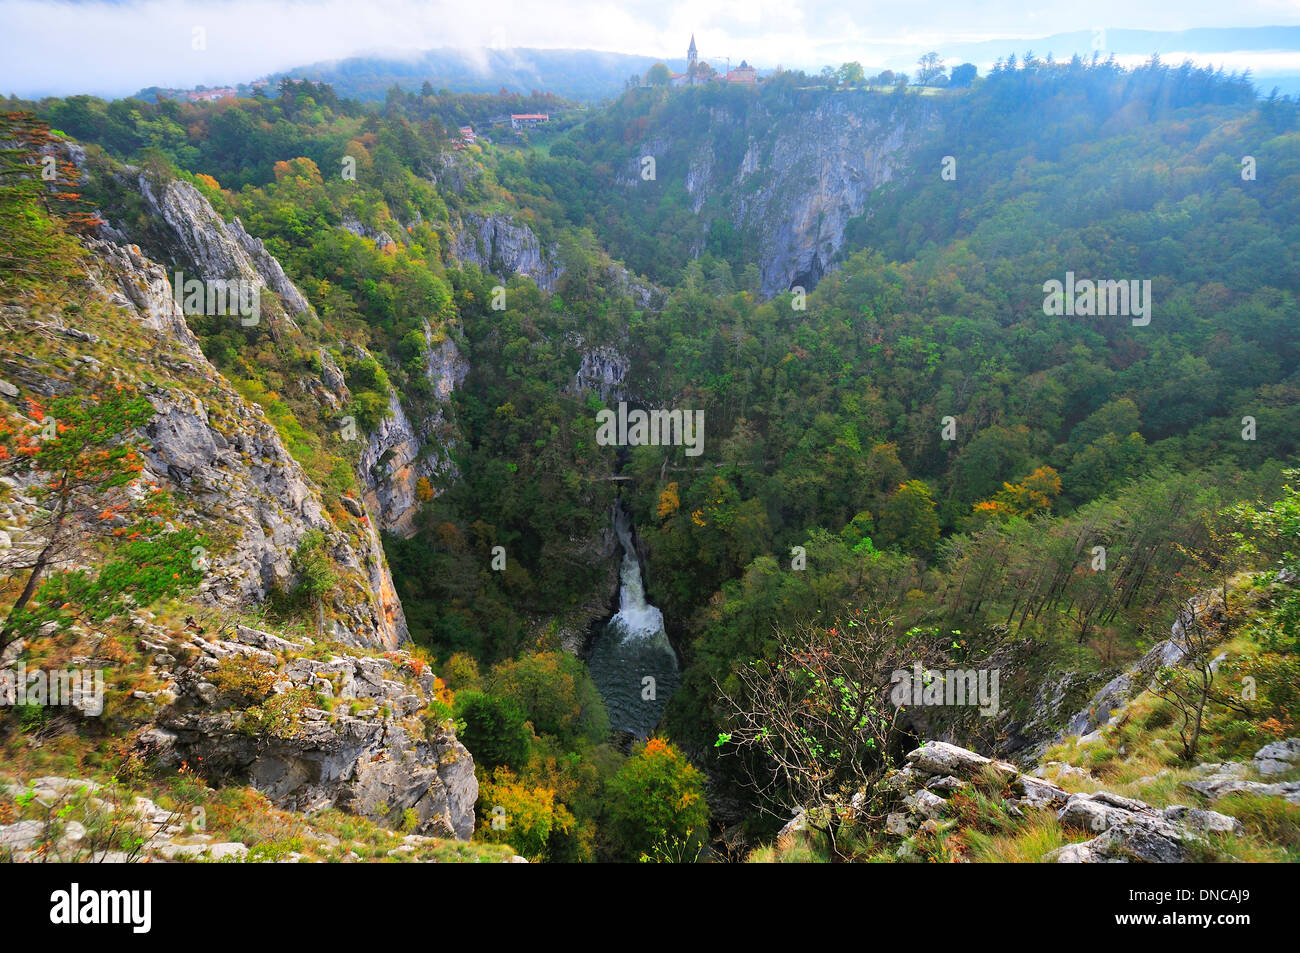 Looking down at Škocjan Caves-the most important underground phenomenon Subterranean network in the Karst region of  Slovenia - Stock Image